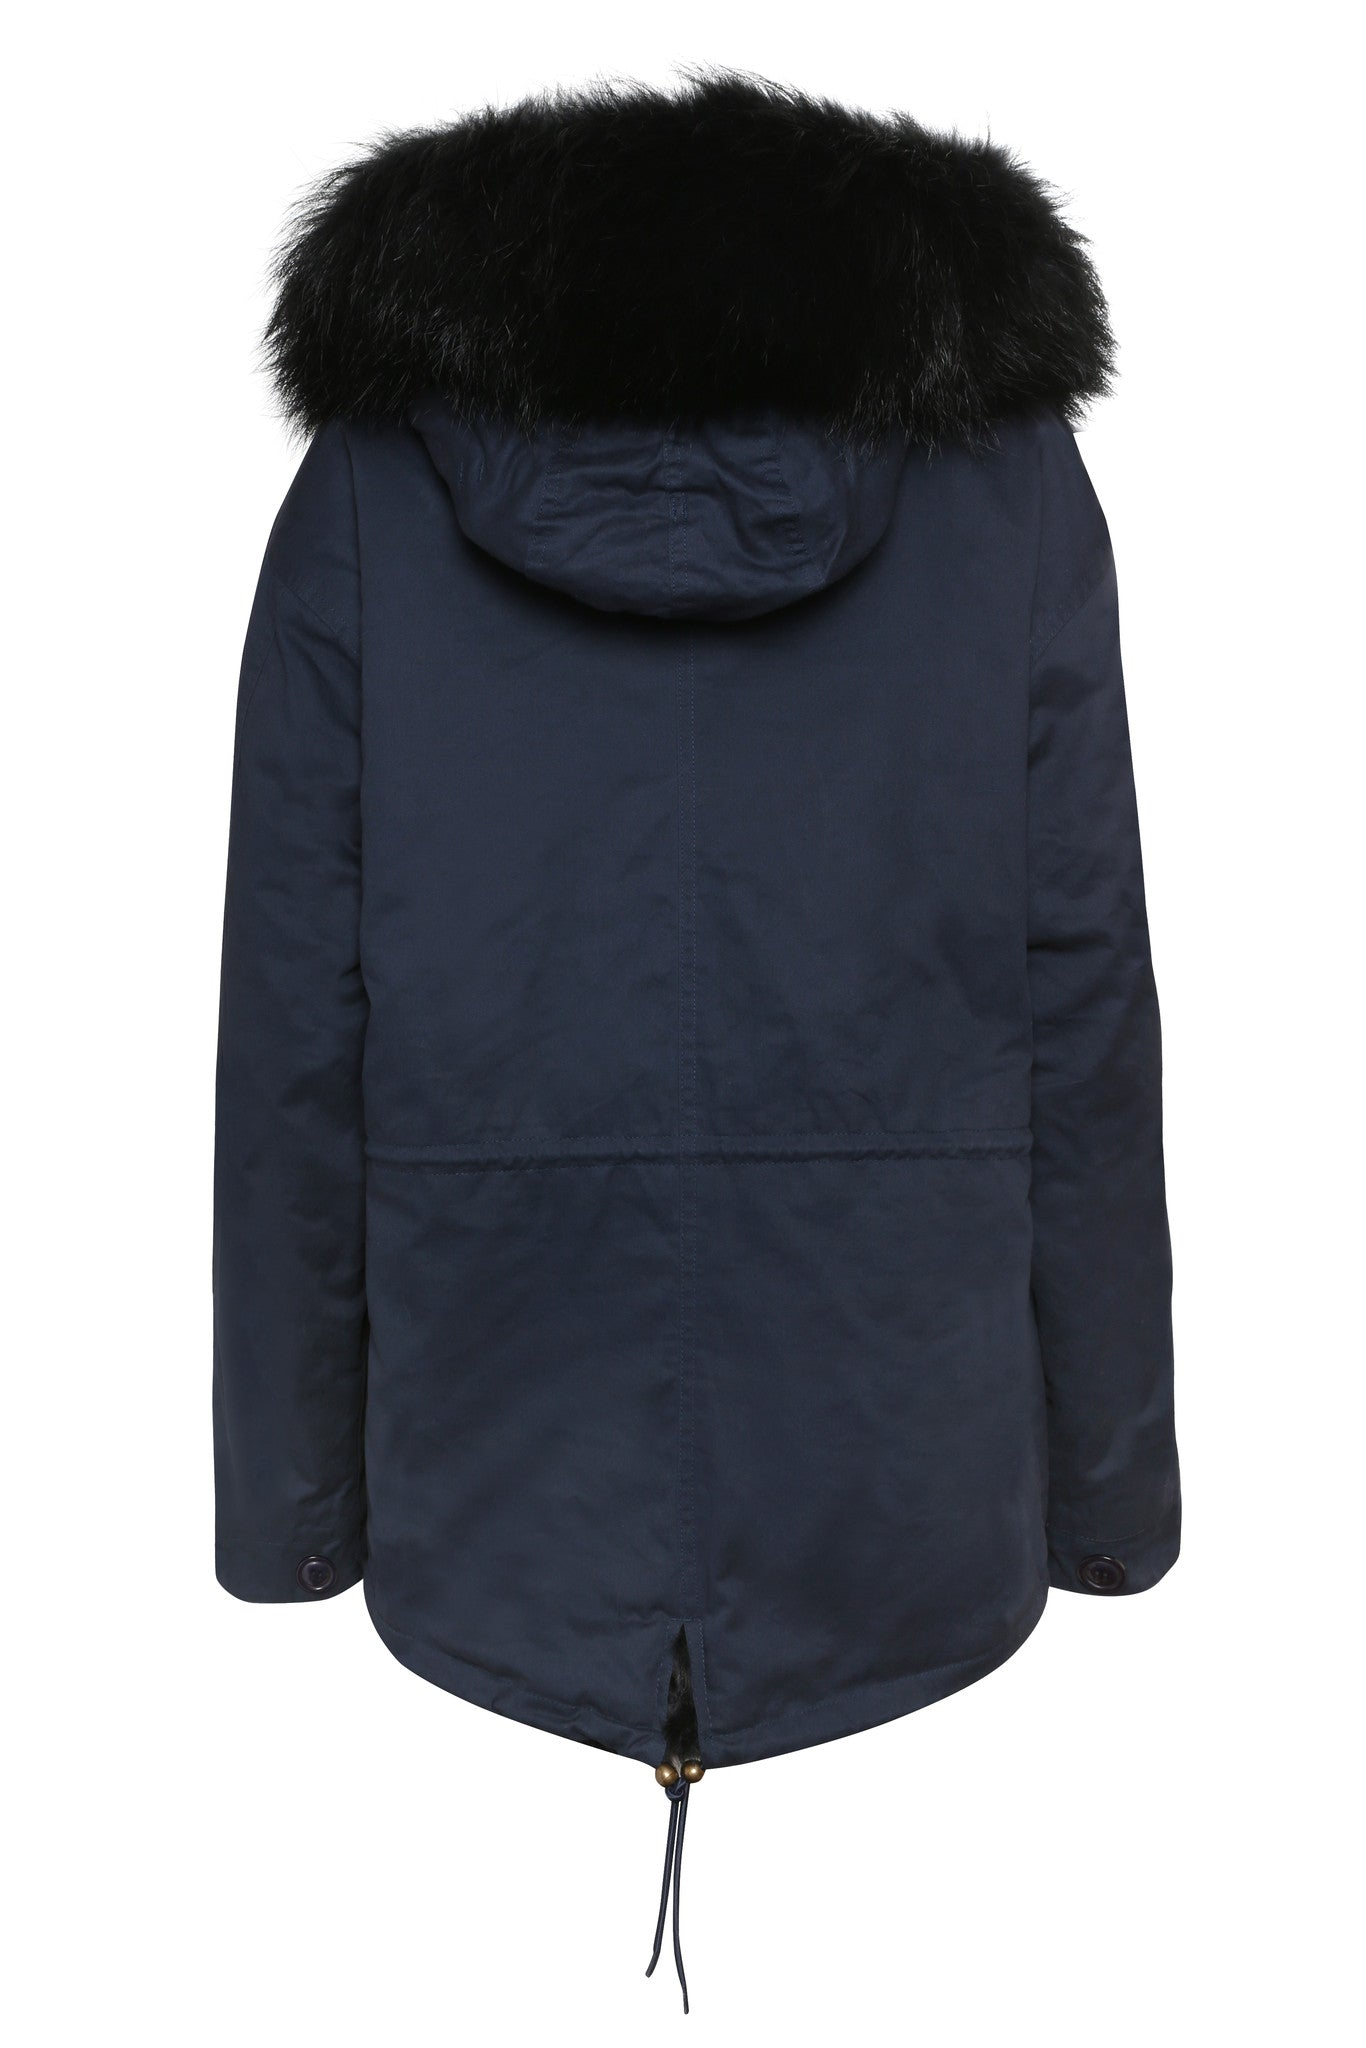 Navy Parka with Black Faux Lining and Hood